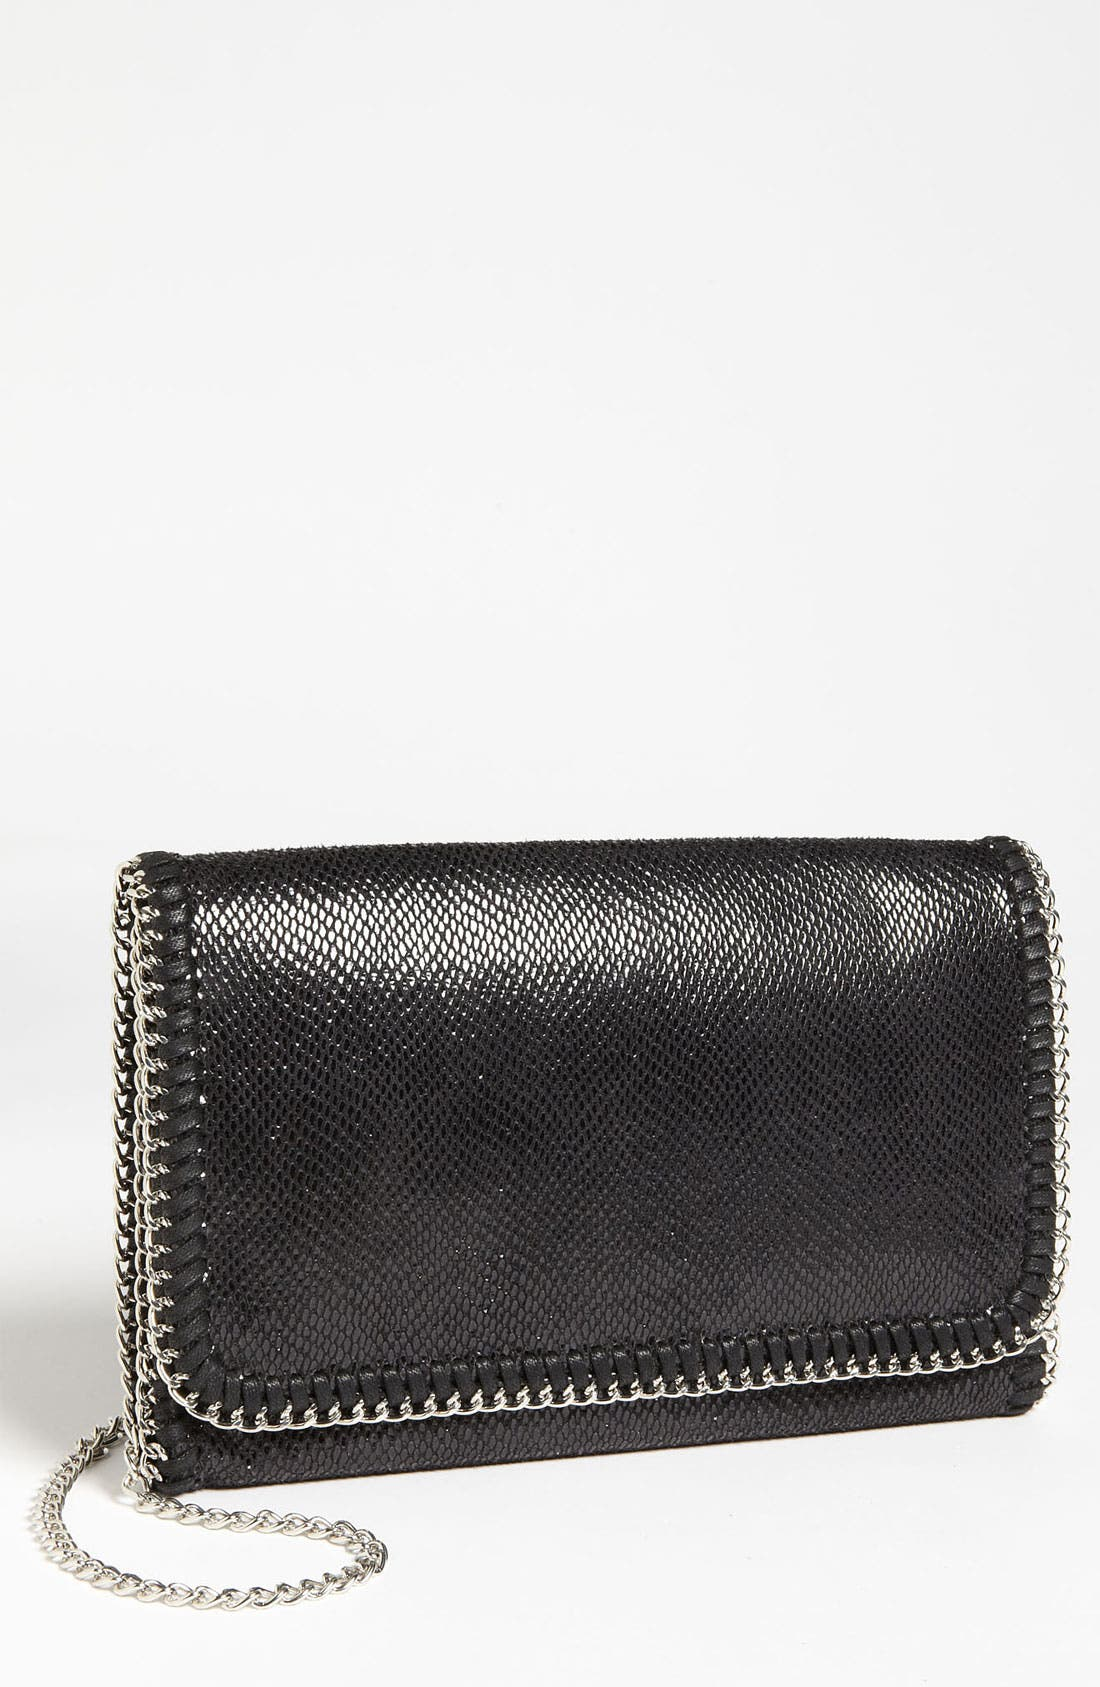 Alternate Image 1 Selected - Tarnish 'Lizard Chain' Clutch